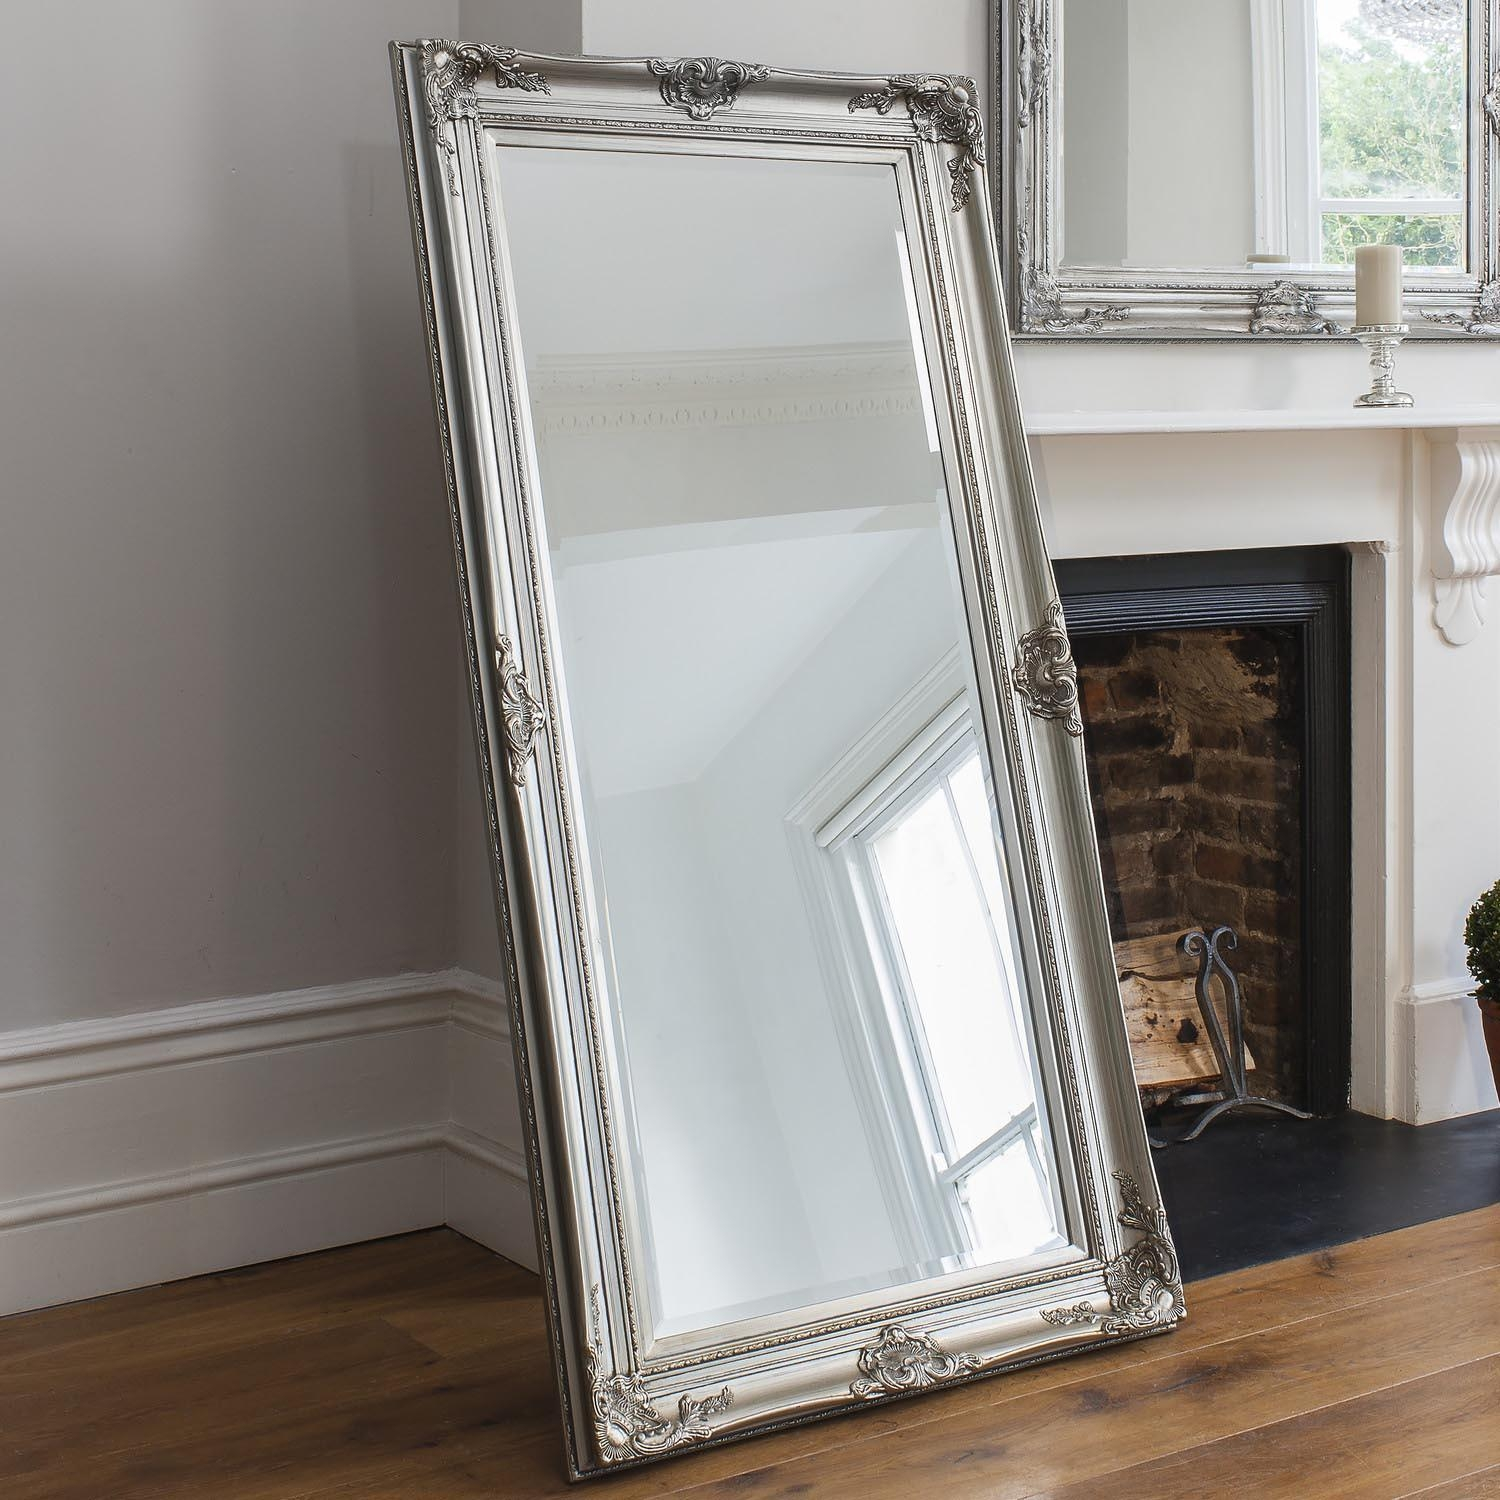 Cheap Extra Large Floor Mirrors | Floor Decoration Inside Large Floor Mirrors (Image 4 of 20)